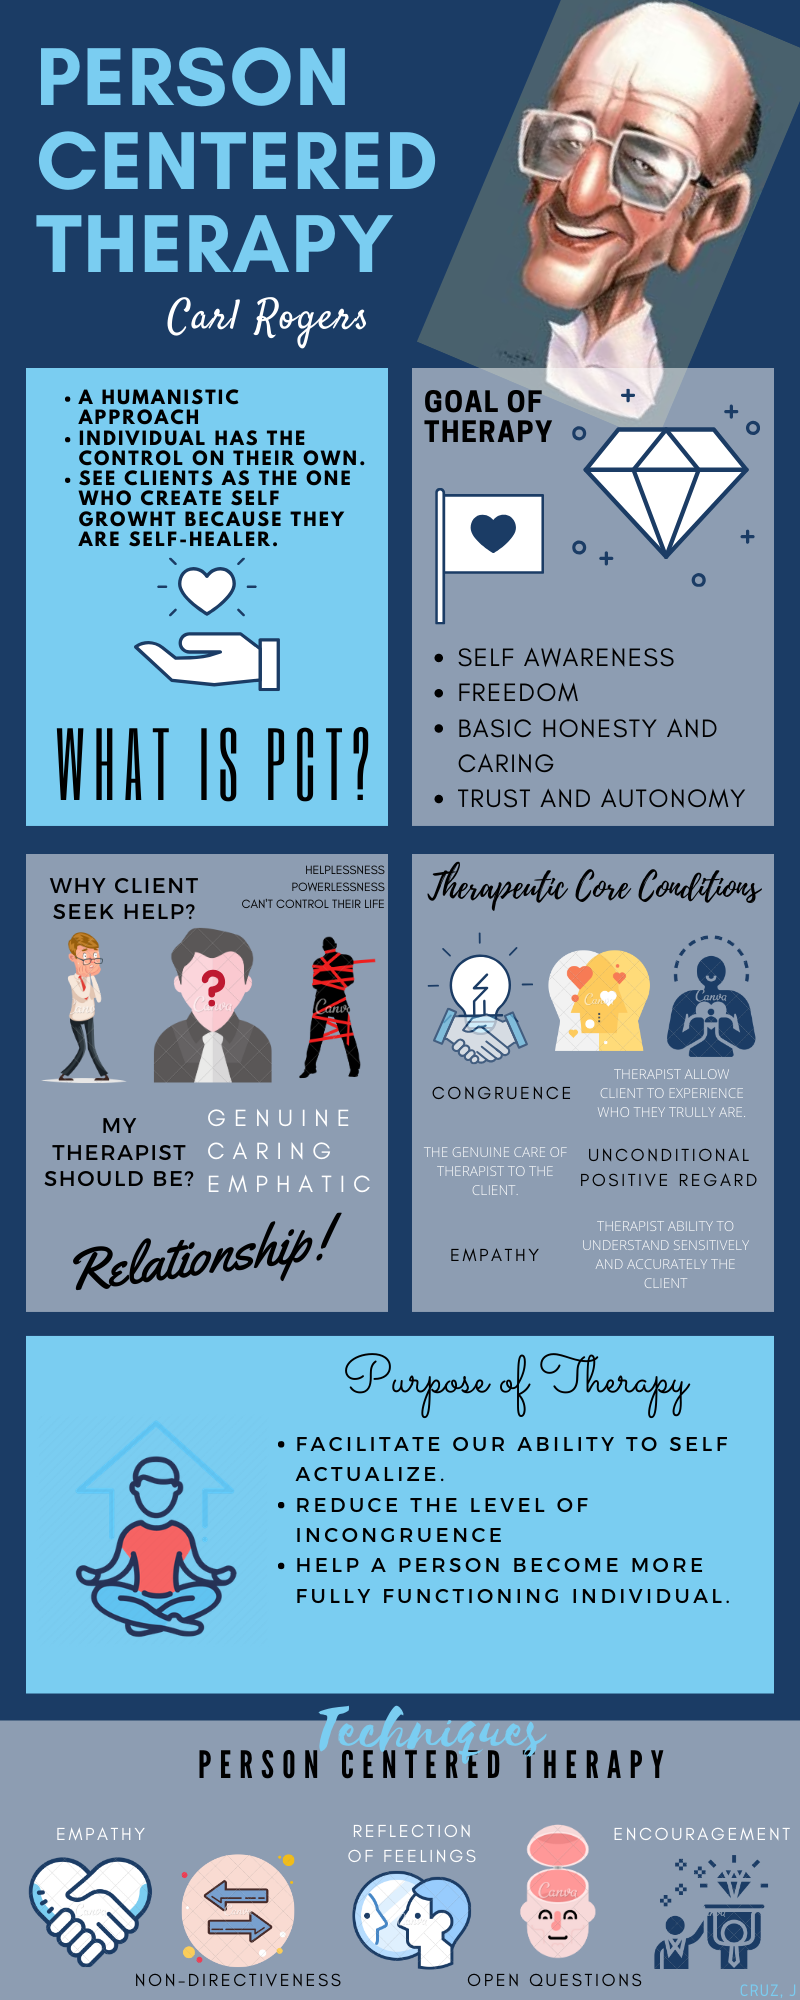 Person Centered Therapy Person Centered Therapy Counseling Techniques Psychological Therapies